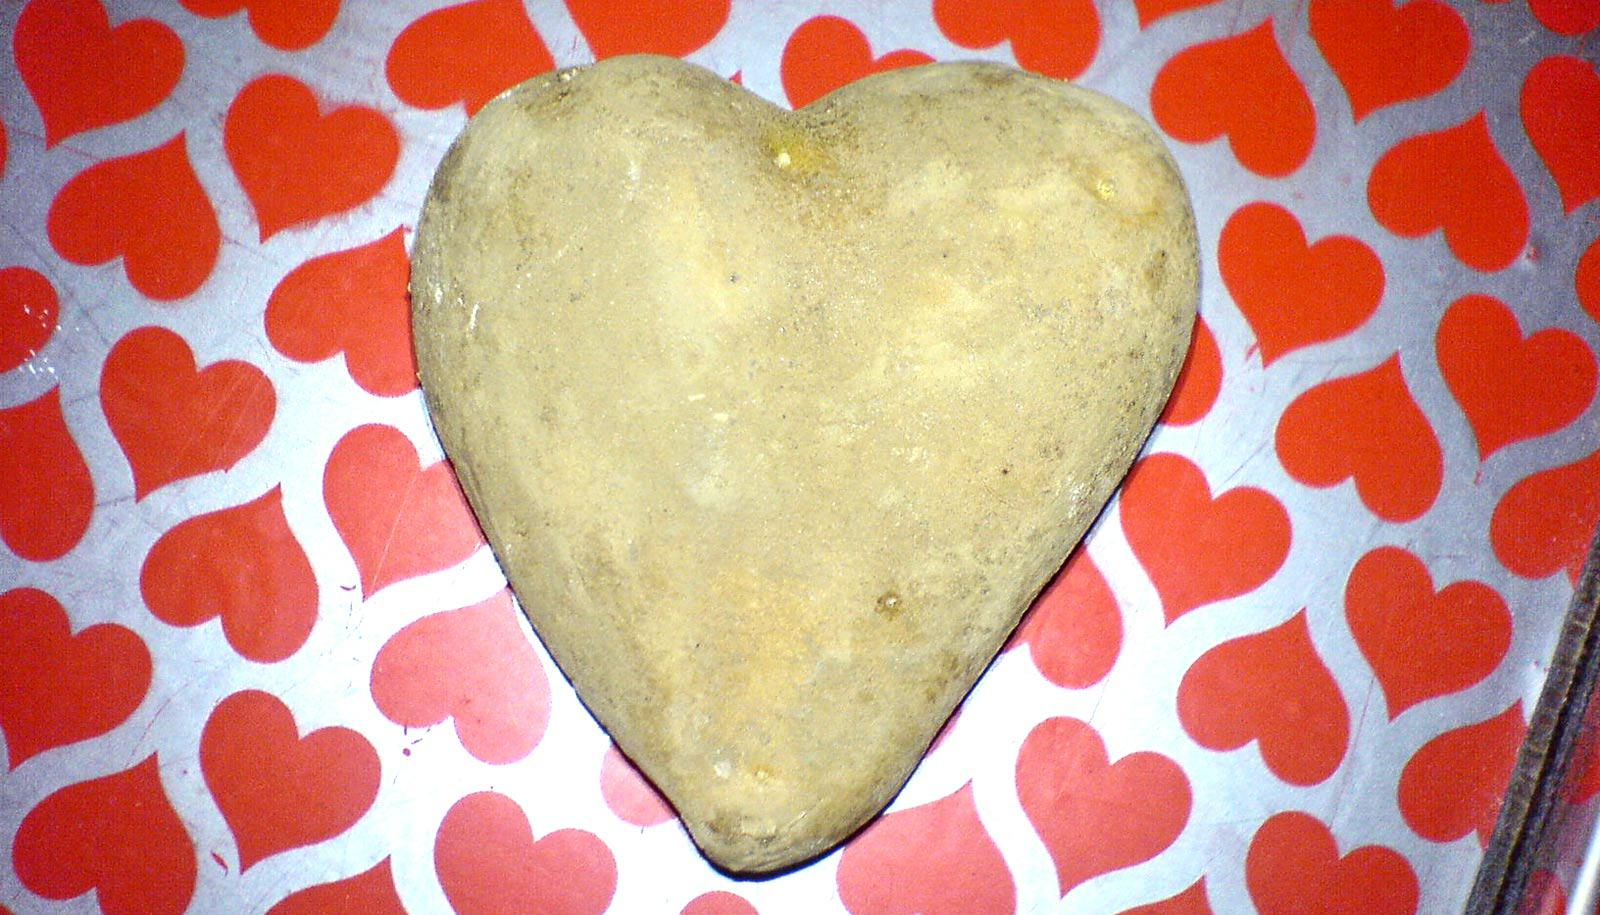 starch - heart-shaped potato on red heart pattern